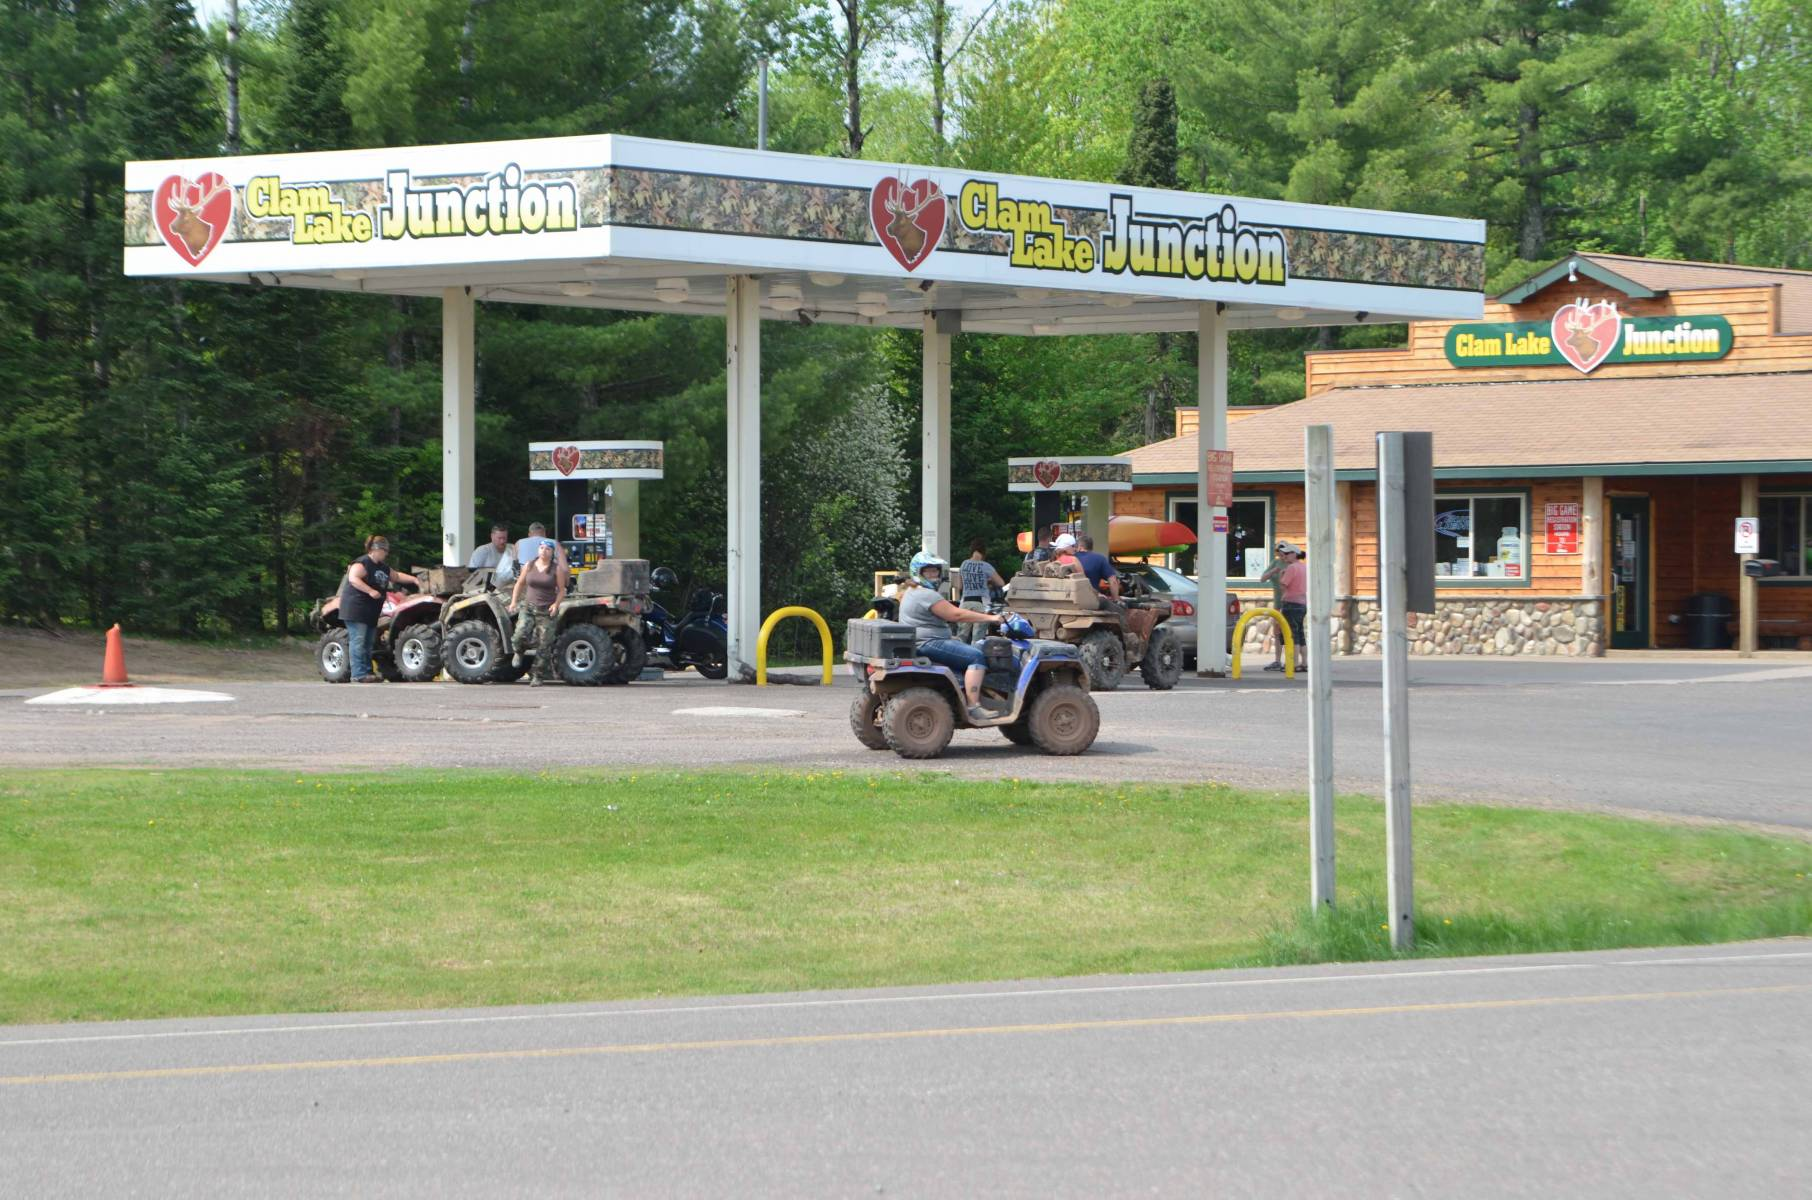 clam-lake-junction-100